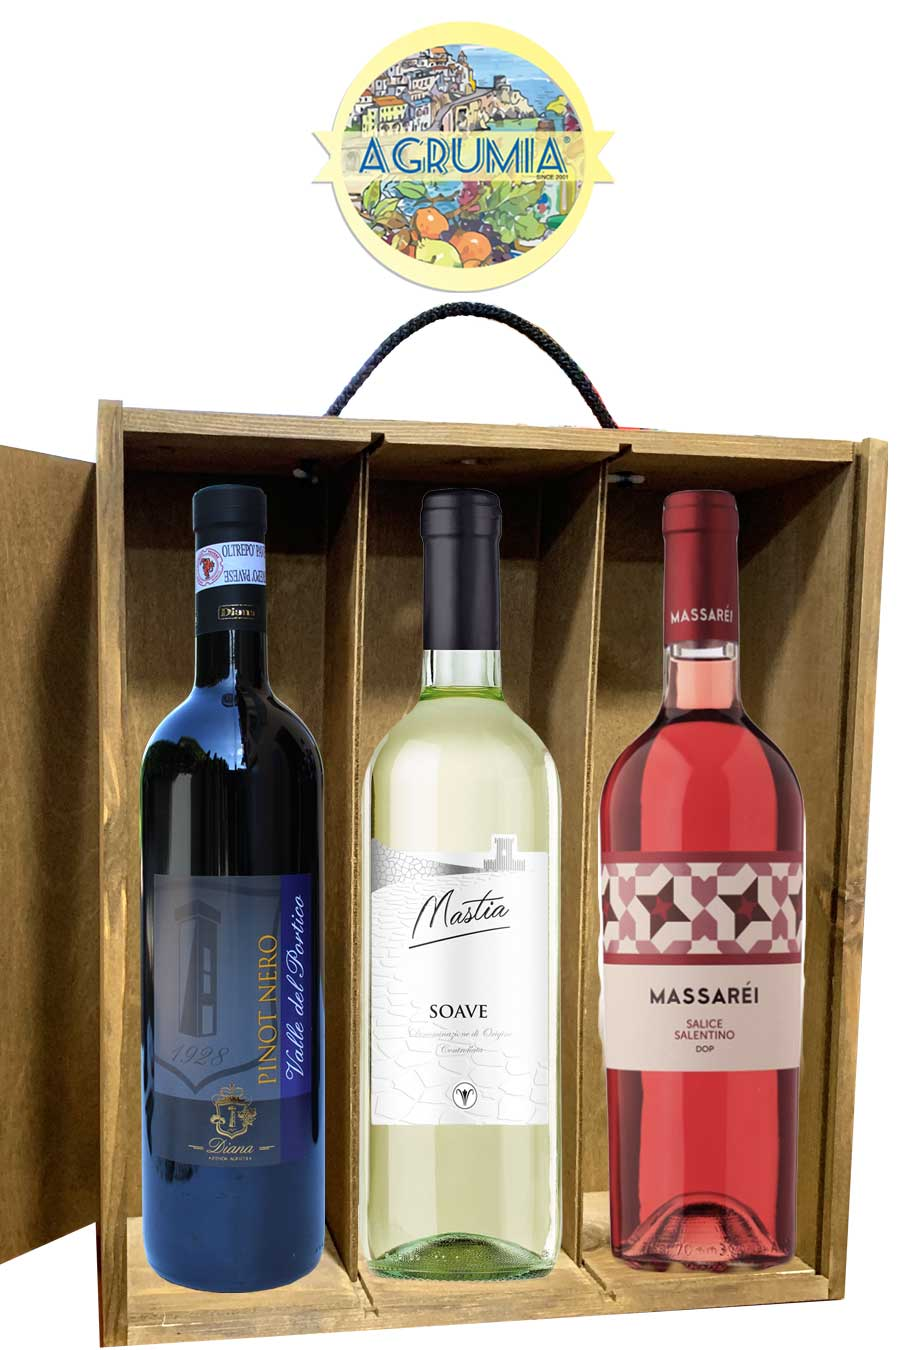 Agrumia Classic Triple Bottle Italian Wine Hamper